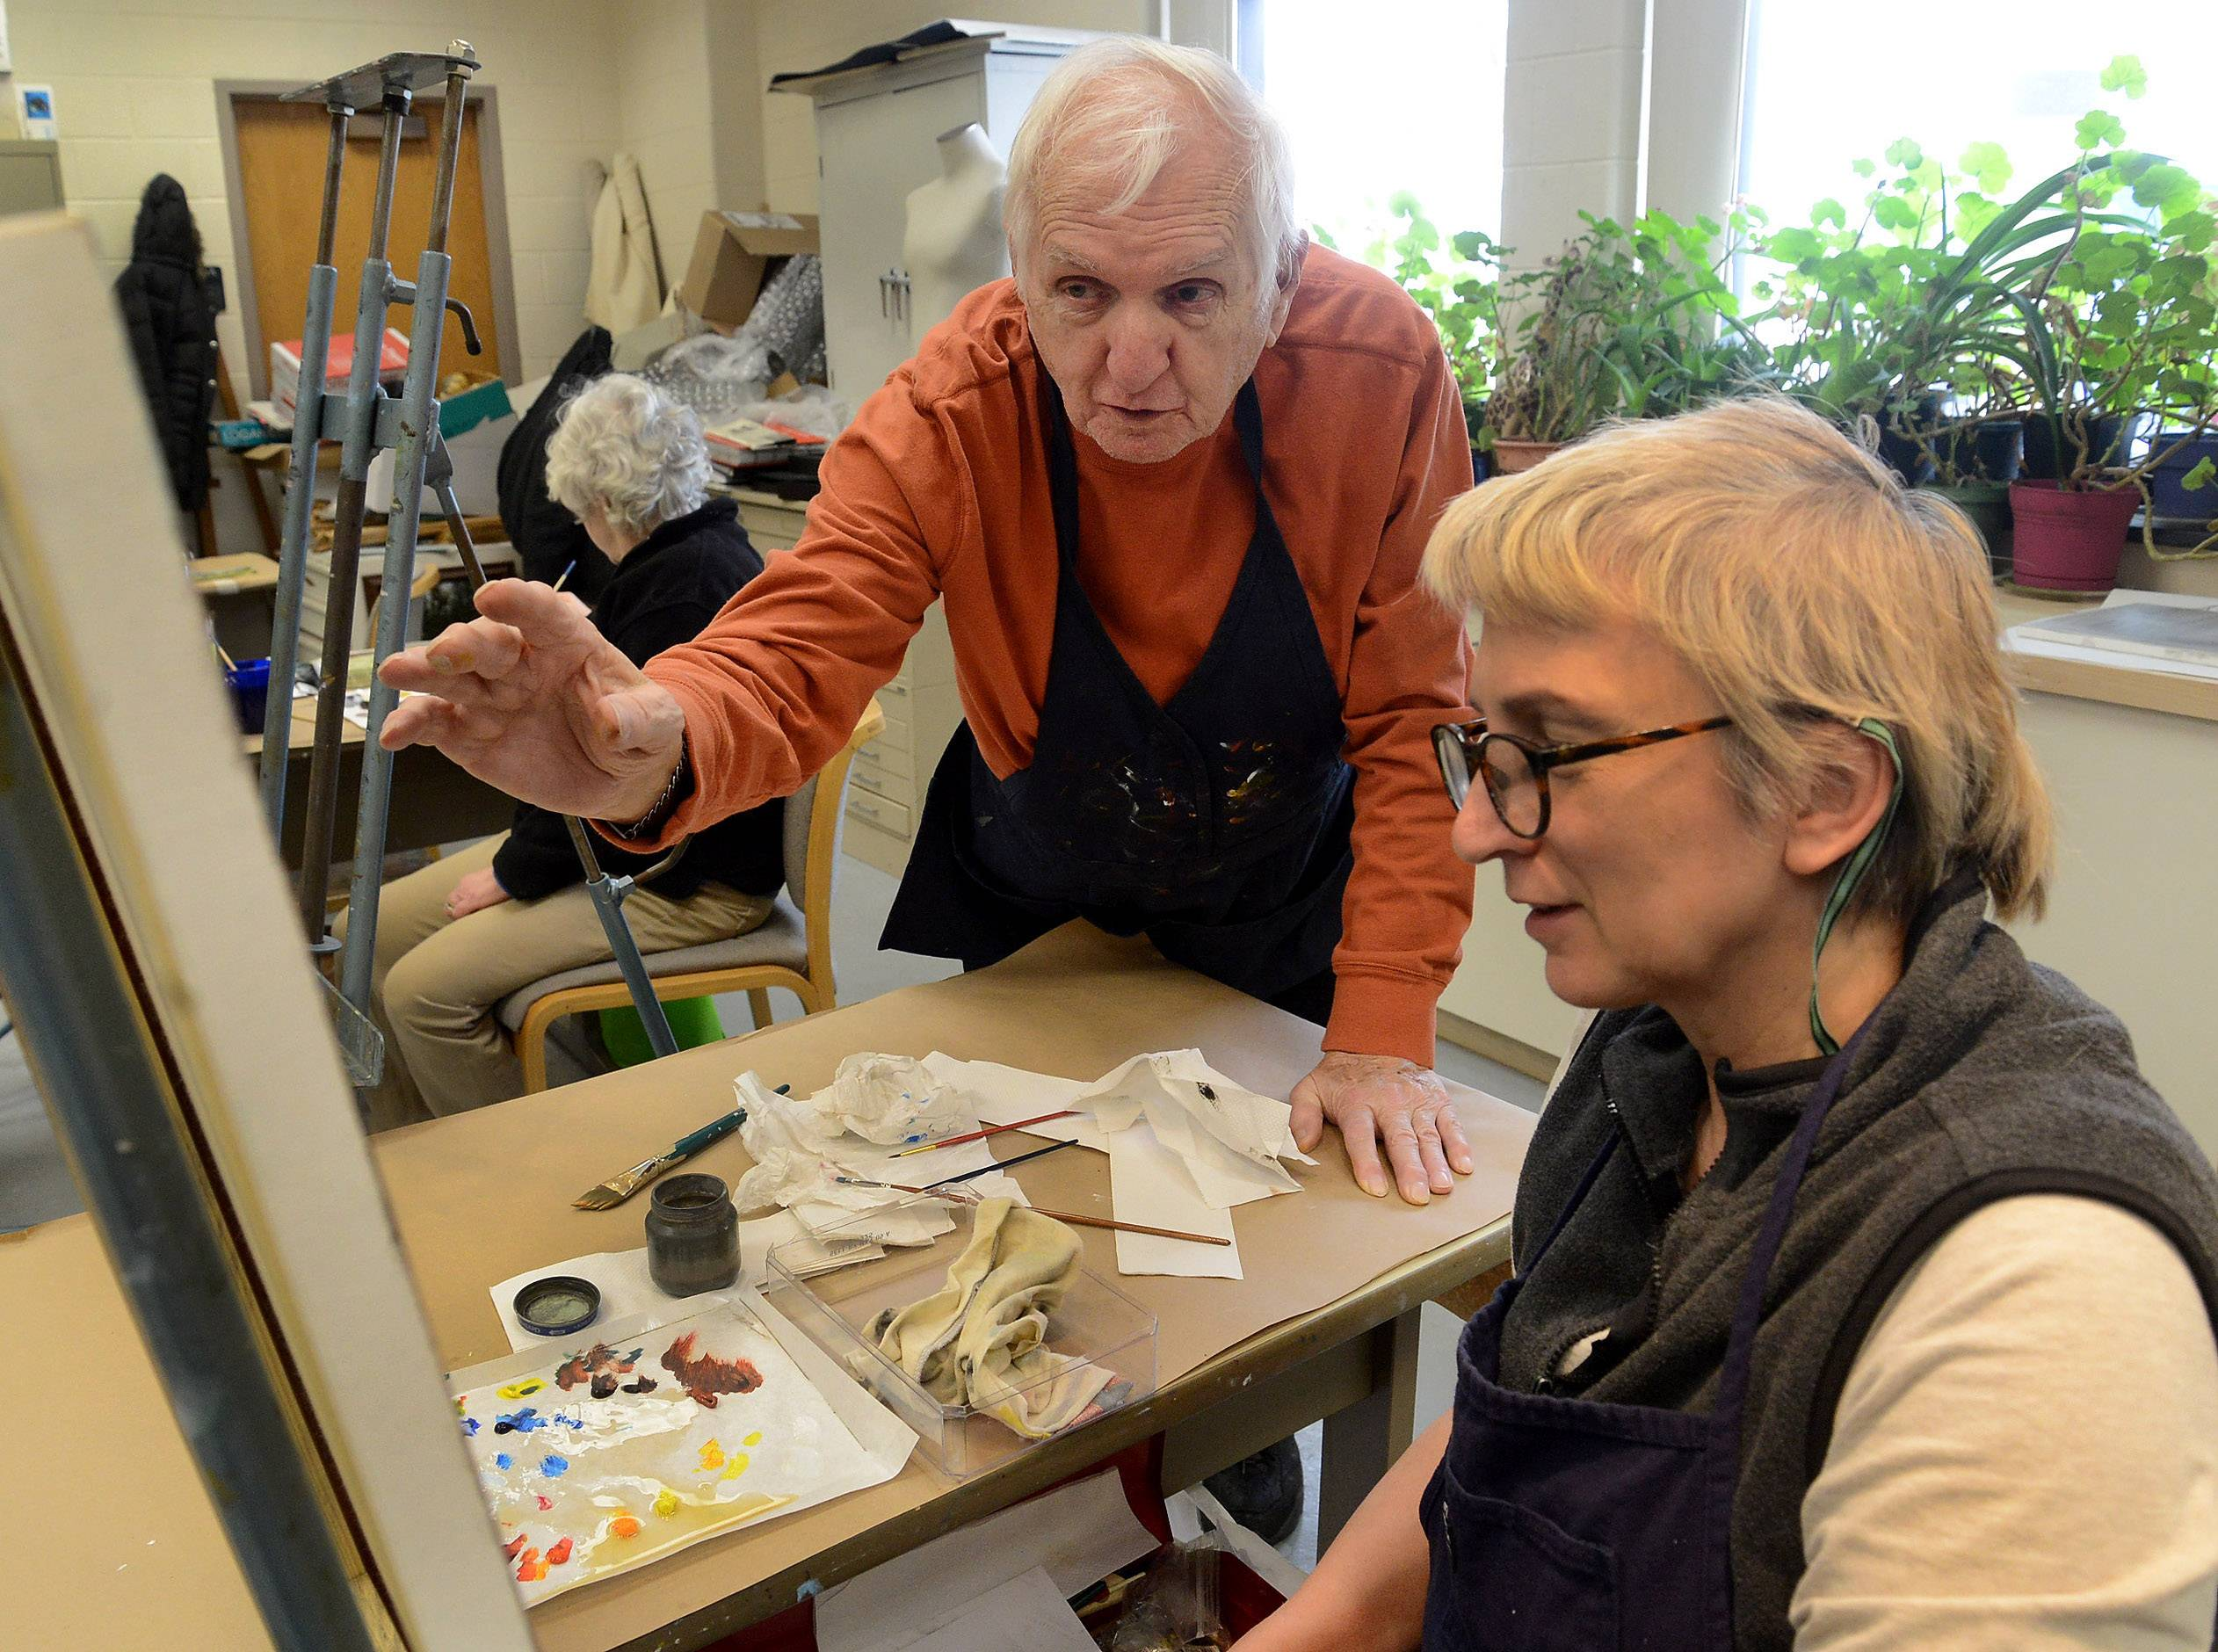 Chuck McCann gives some advice to fellow student Marilyn Pearson of Antioch during an art class at College of Lake County.